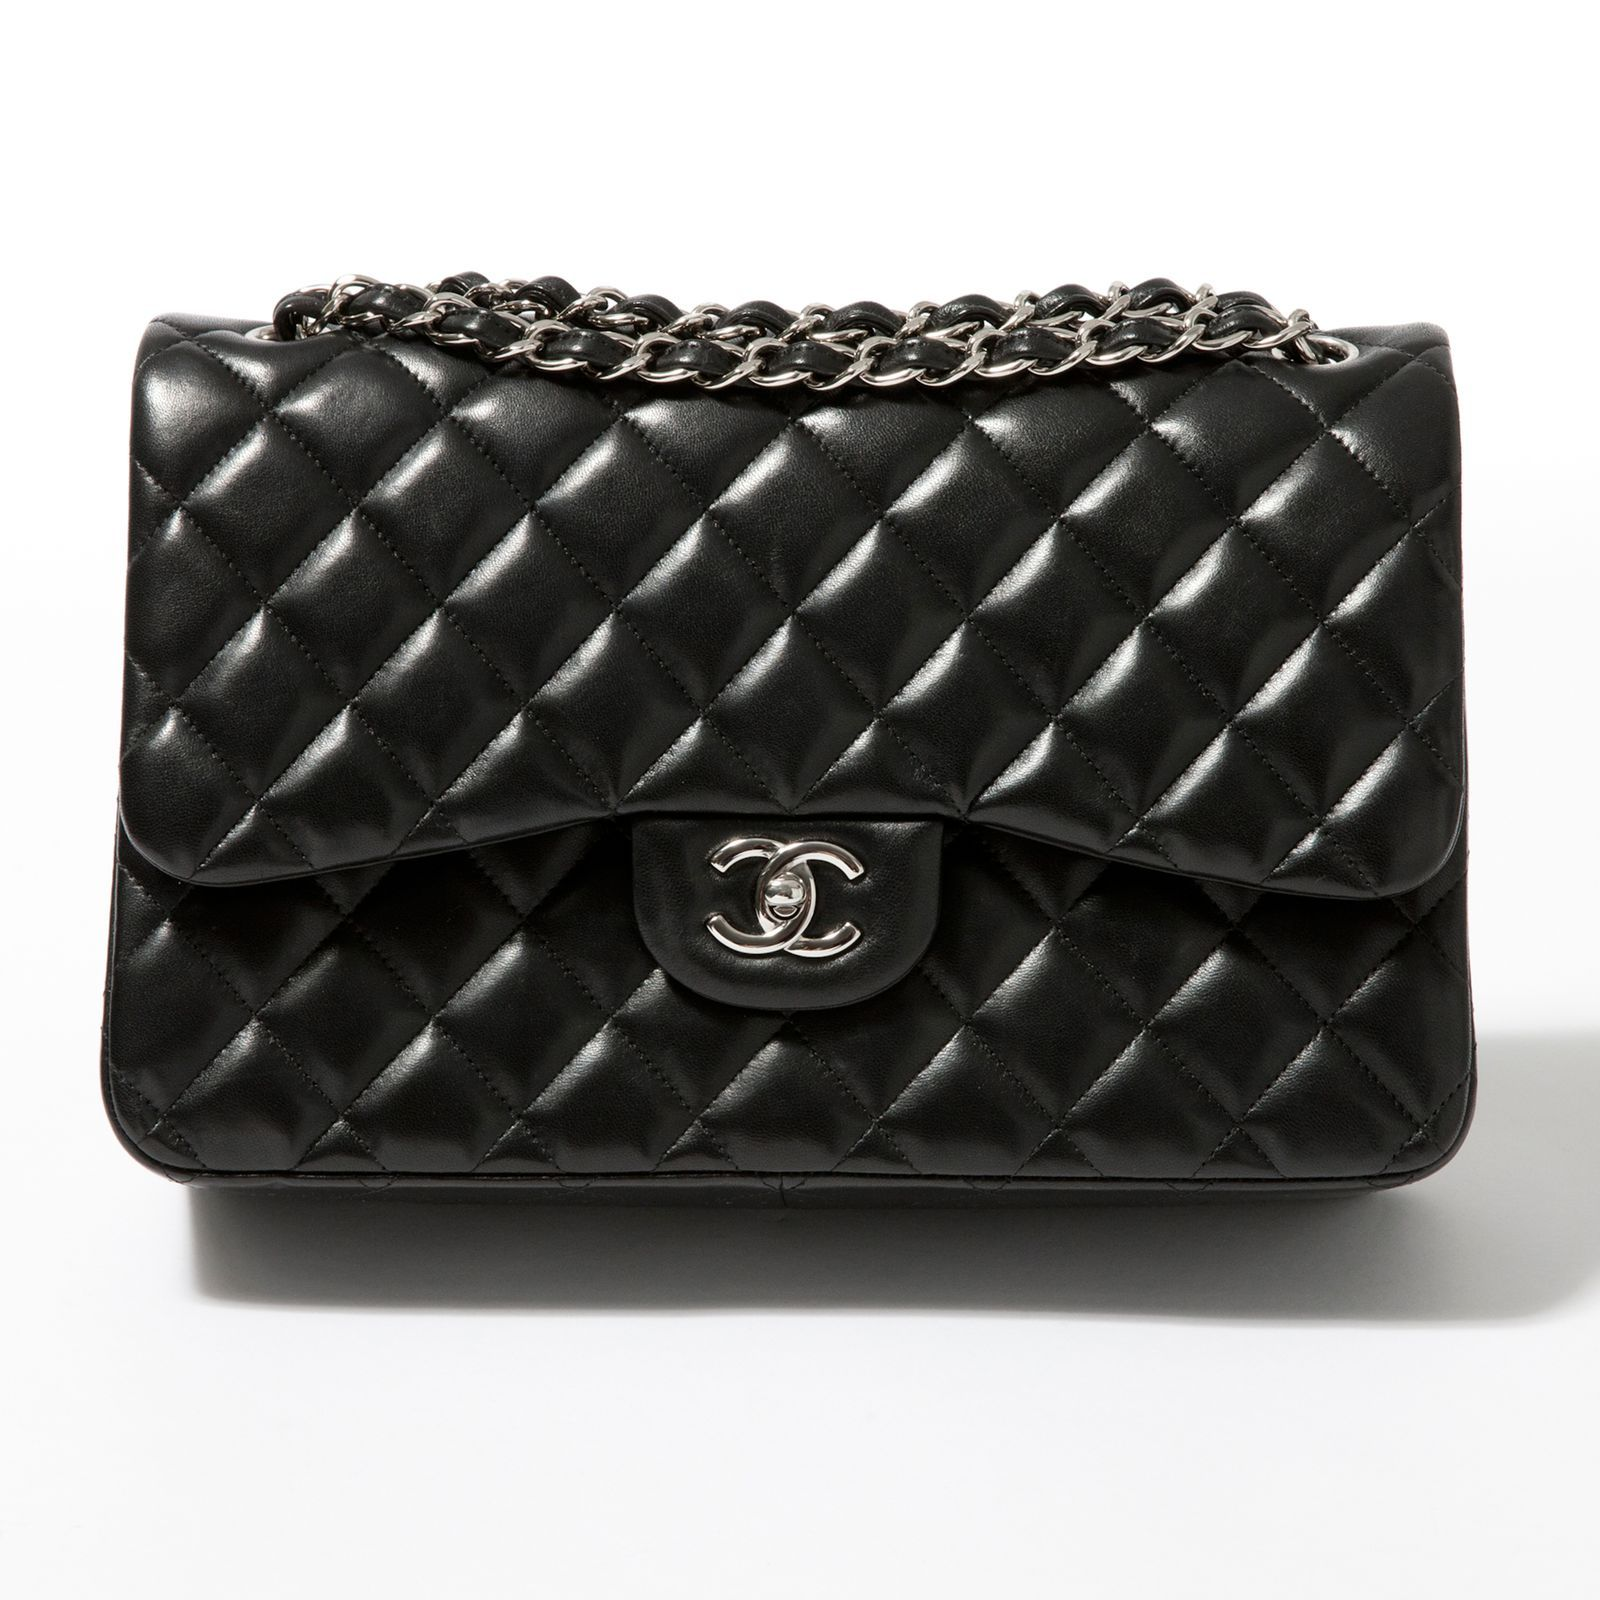 051c509bcf8a 10 of the most valuable designer bags